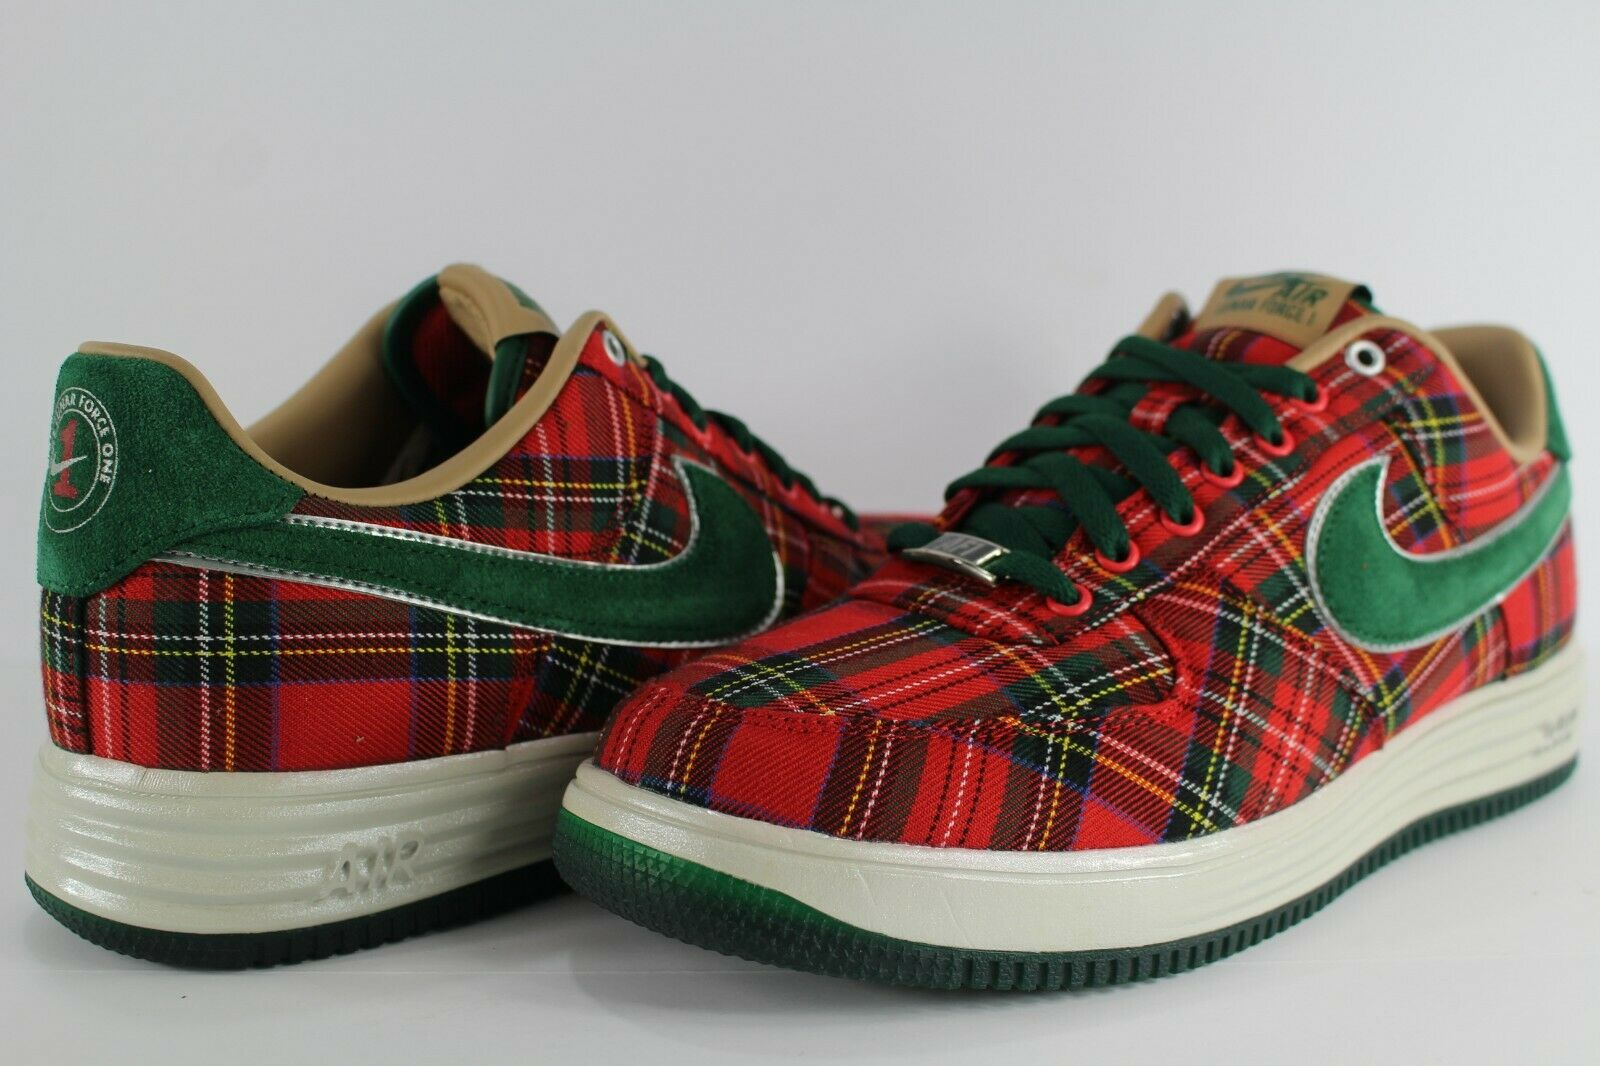 Nike Lunar Force 1 City Pack QS London Gym Red Gorge Green Plaid 10 602862-600